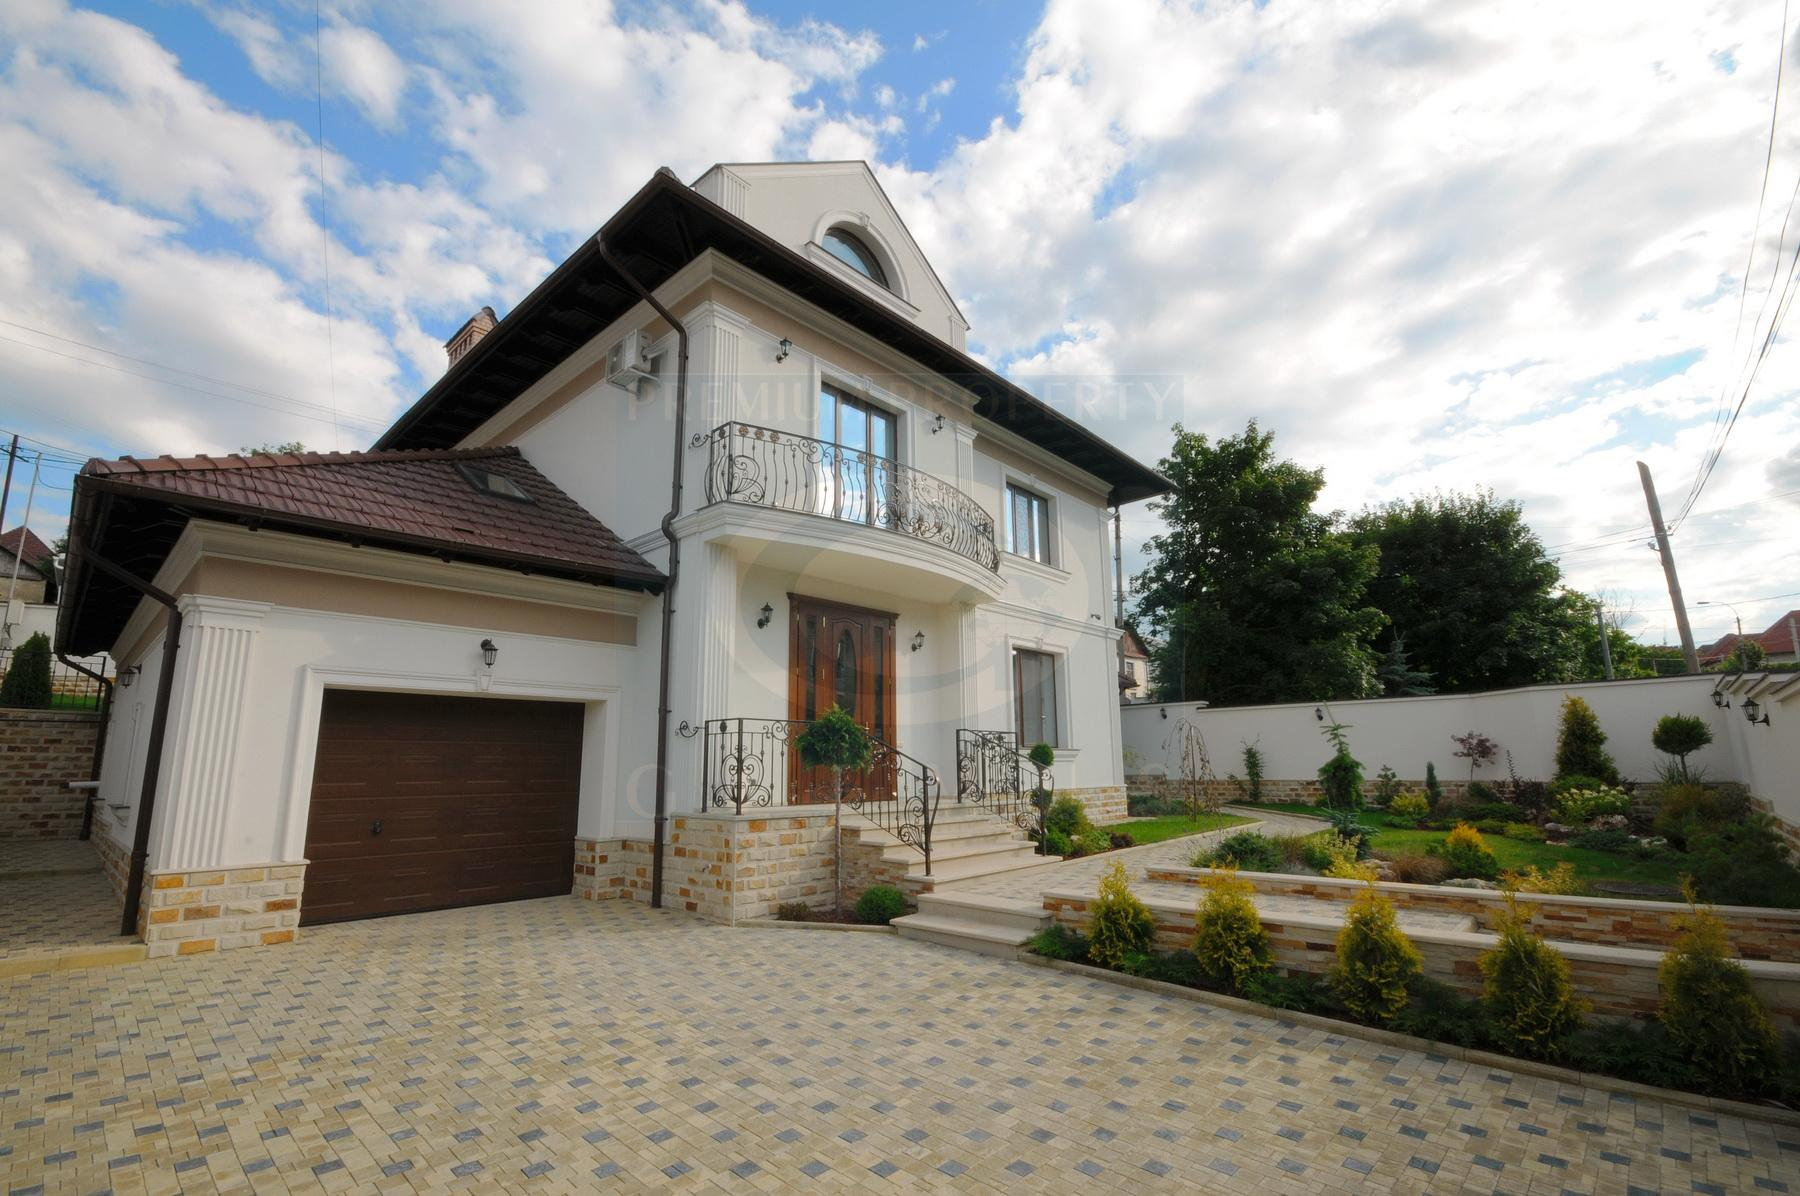 Three-bedroom house with a large living room in Telecentru area.